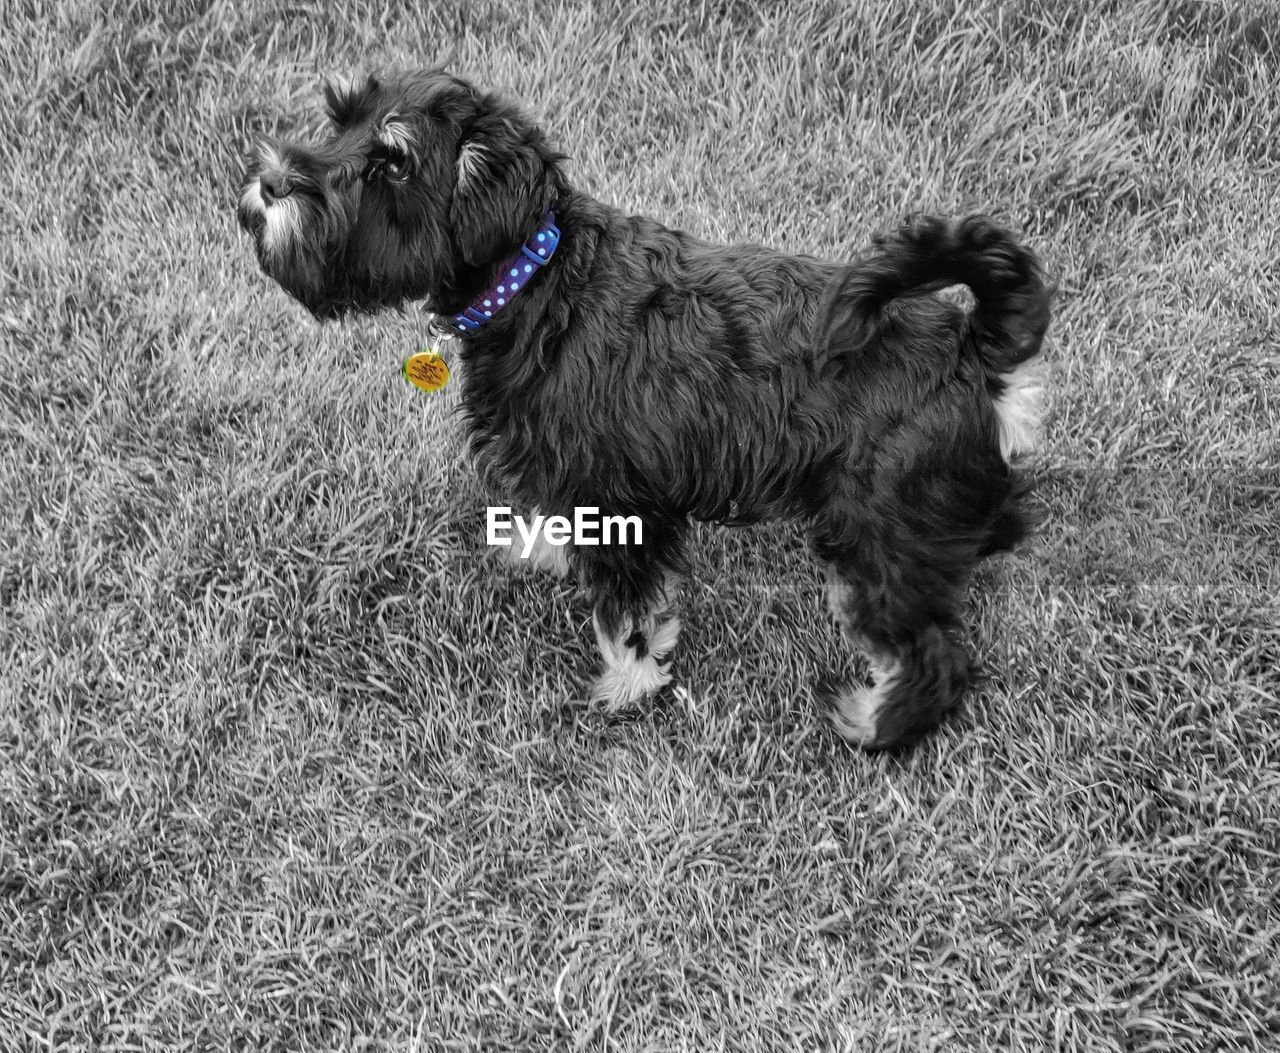 domestic, dog, pets, canine, domestic animals, one animal, mammal, animal themes, animal, grass, vertebrate, plant, field, collar, pet collar, no people, nature, land, standing, leash, small, profile view